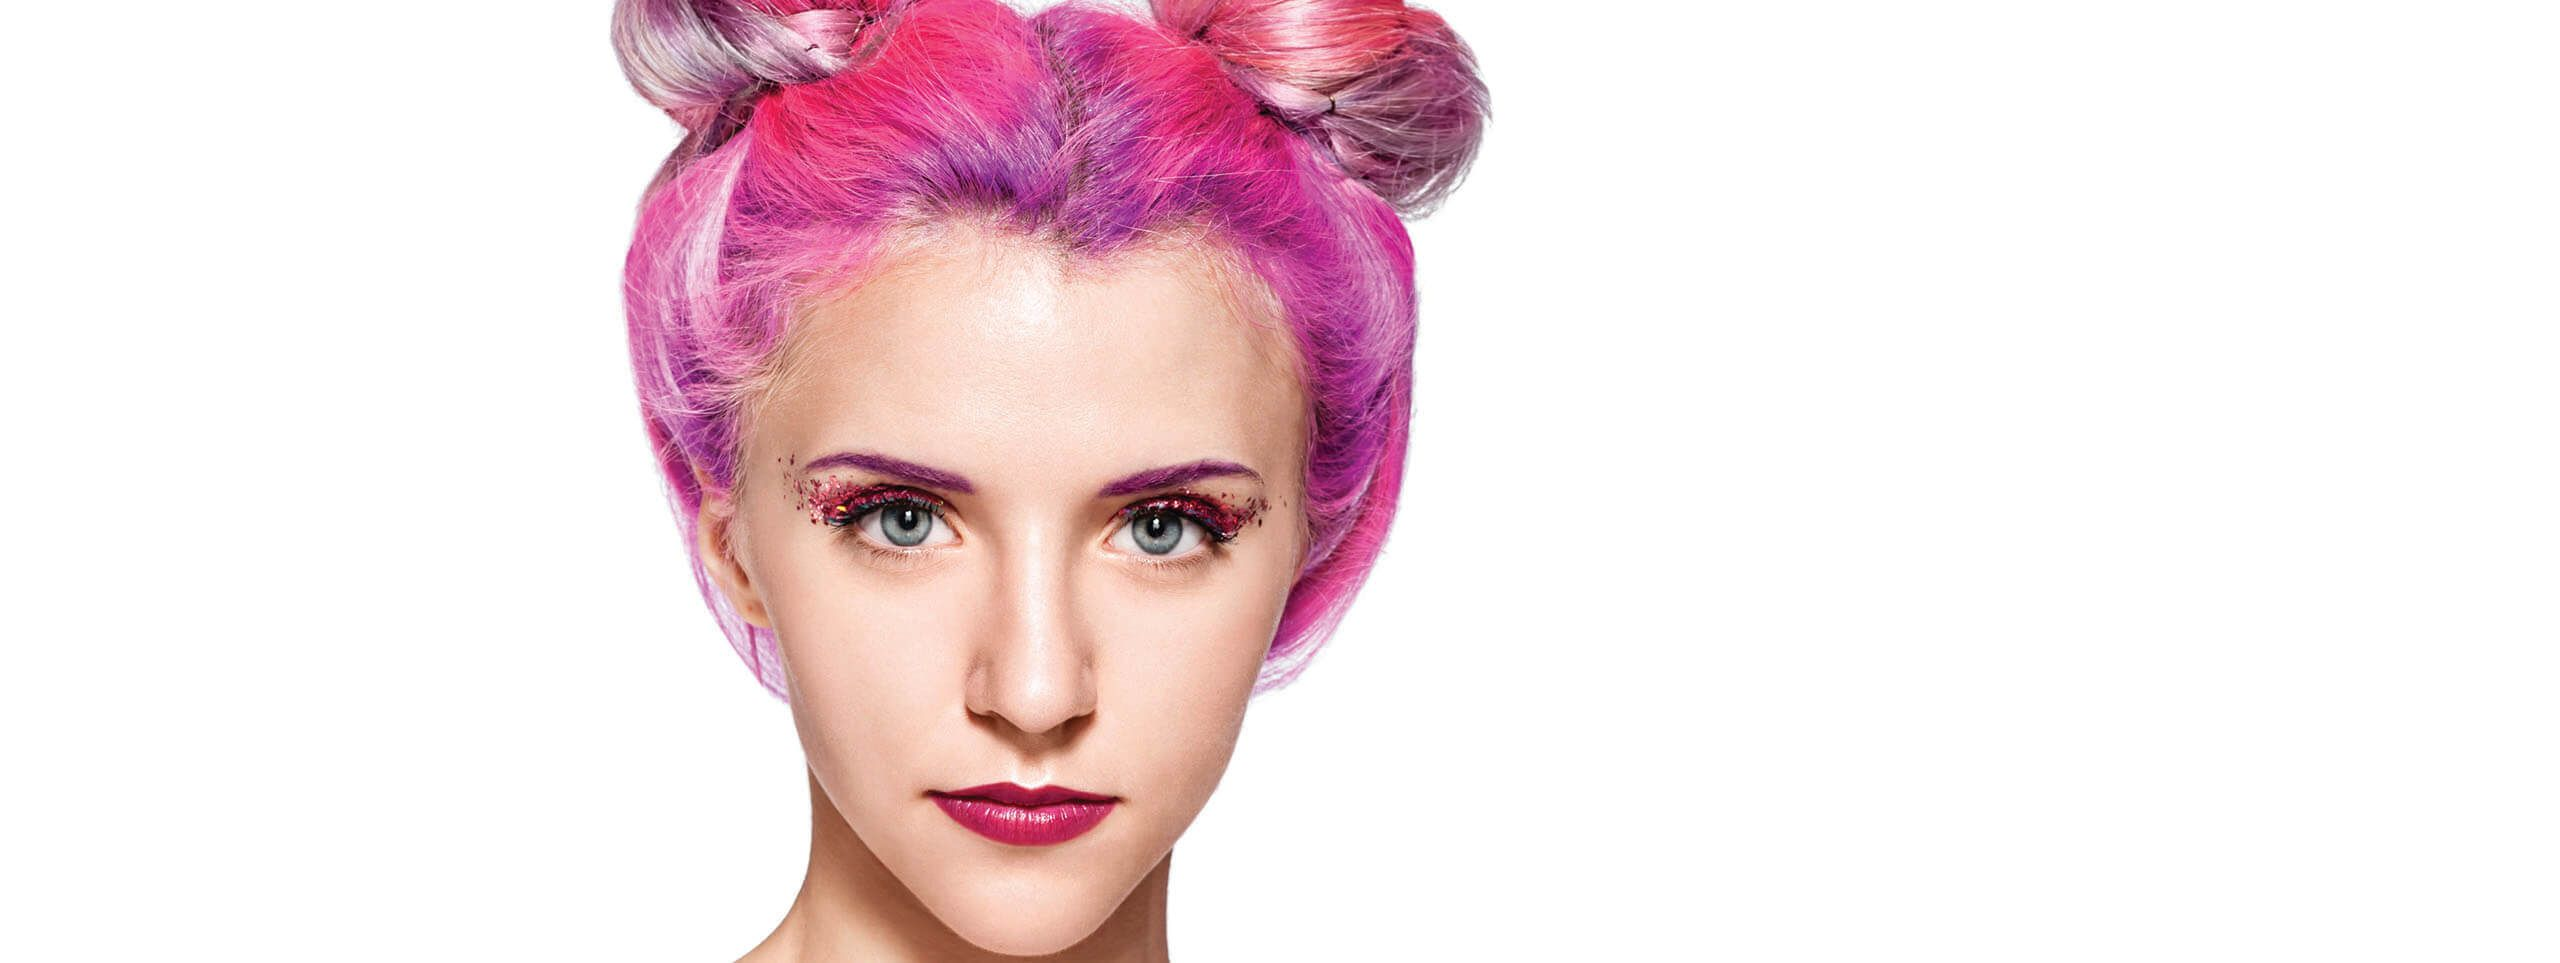 Woman with pink hightlighted hairstyle